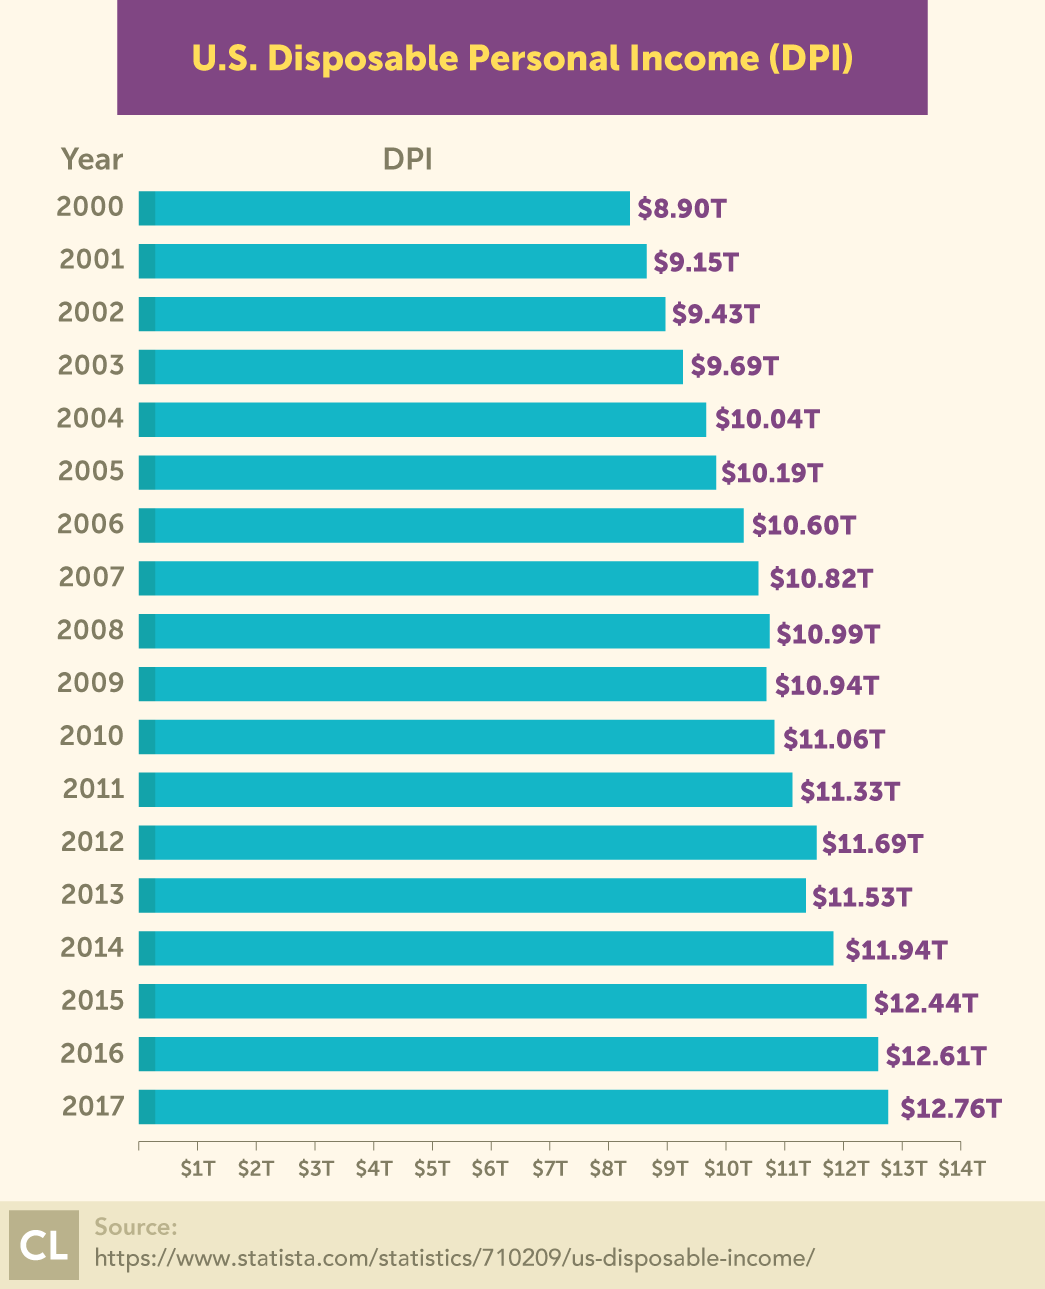 U.S. Disposable Personal Income (DPI) from 2000-2017